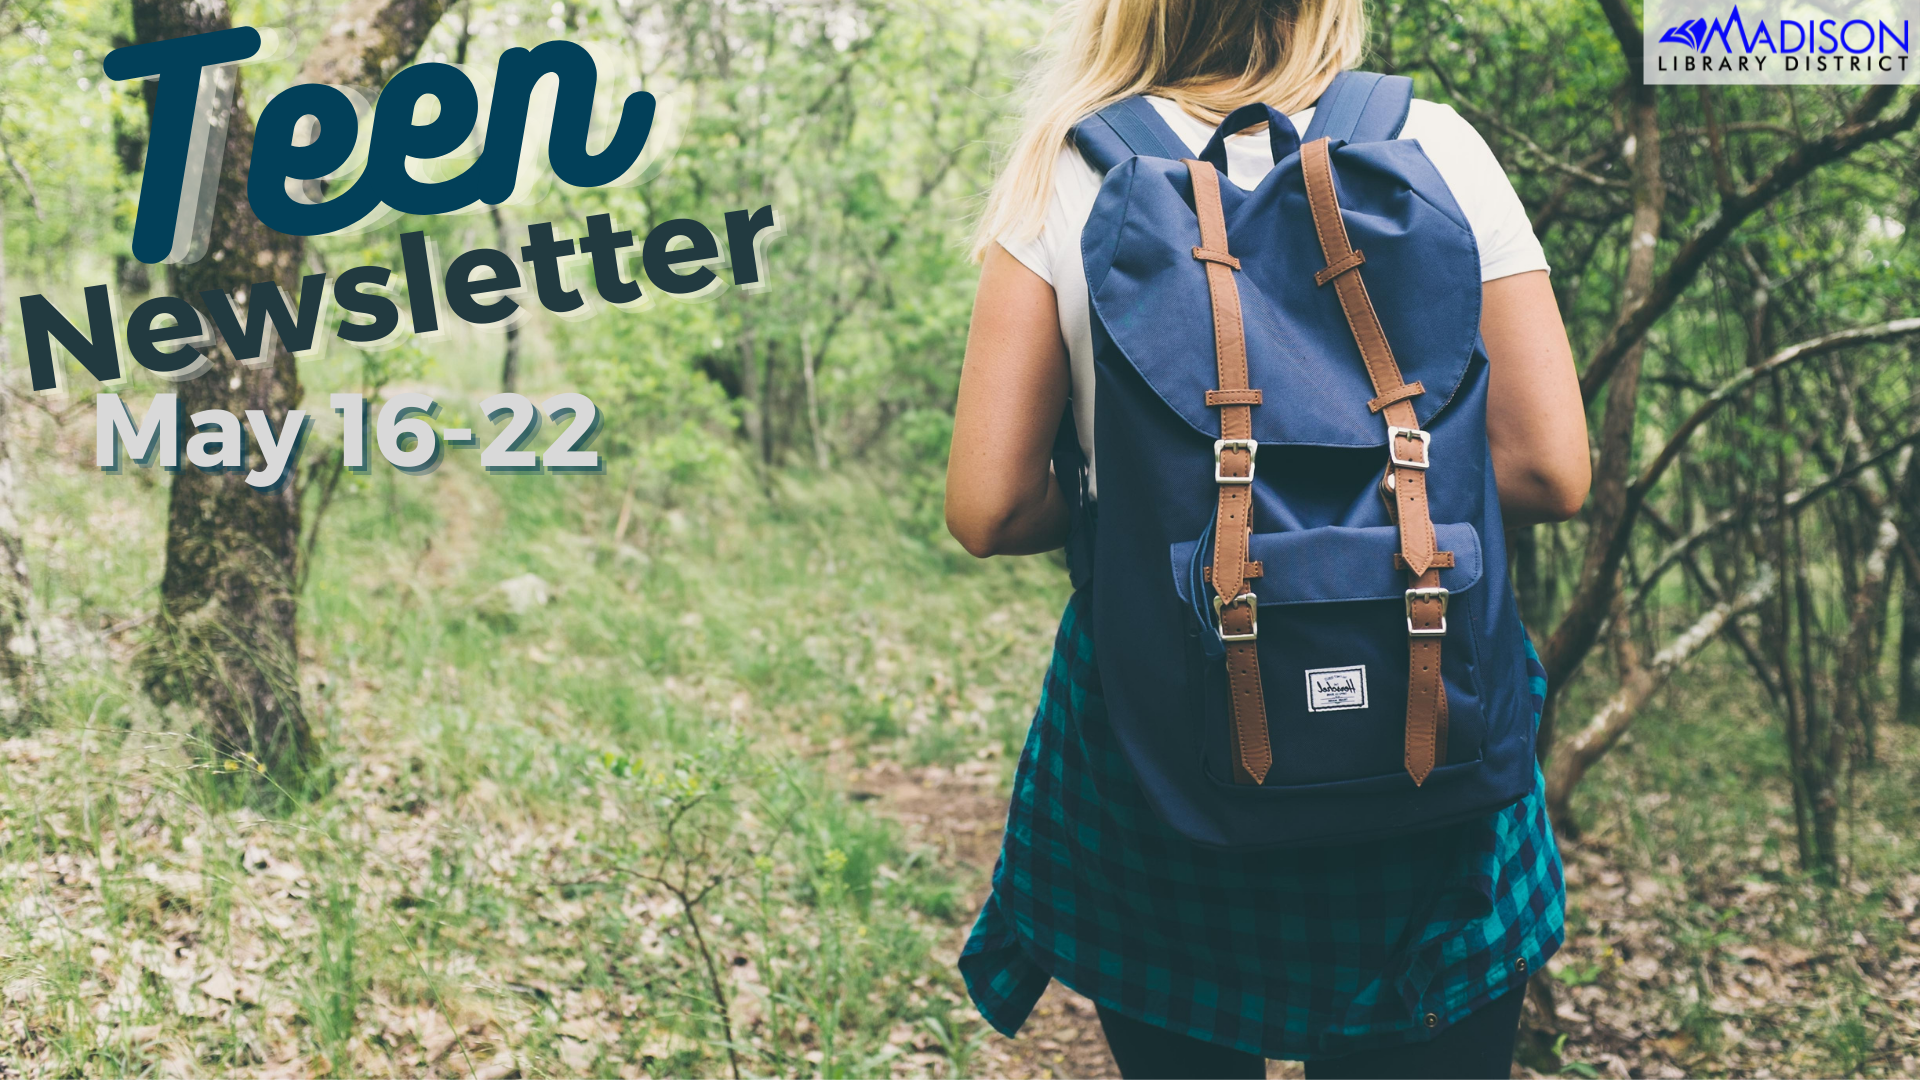 teen newsletter may 16-22